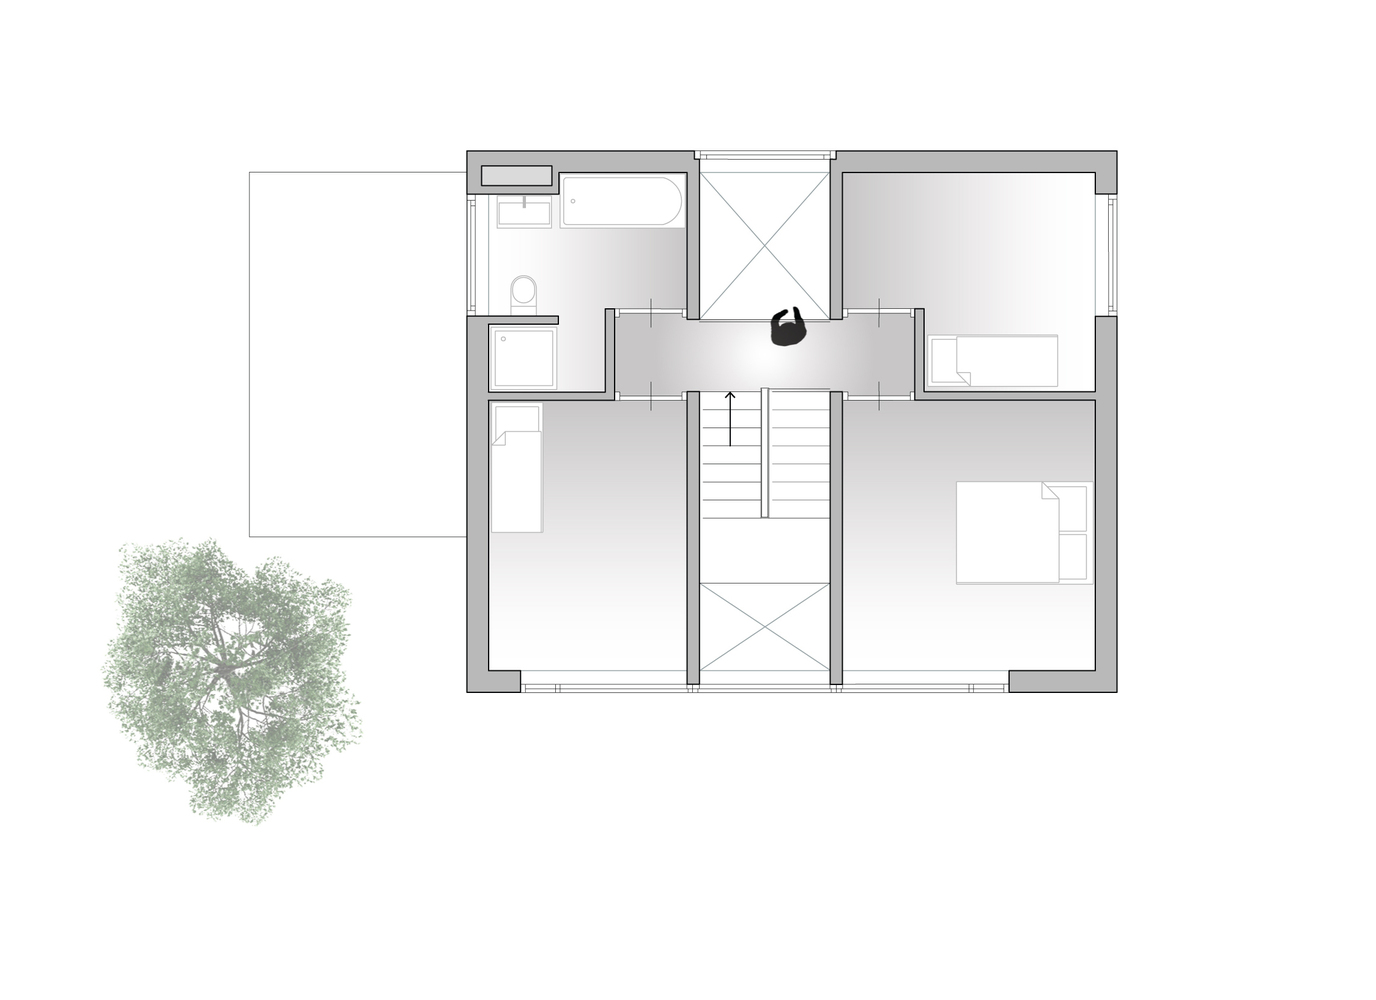 Gallery of DIY House / Reset Architecture - 17 on building floor plans, complex floor plans, draw simple floor plans, do it yourself floor plans, car floor plans, friends floor plans, work floor plans, gardening floor plans, square house floor plans, baby floor plans, general floor plans, style floor plans, entertainment floor plans, spring floor plans, kitchen floor plans, food floor plans, storage floor plans, fun floor plans, inspiration floor plans, technology floor plans,